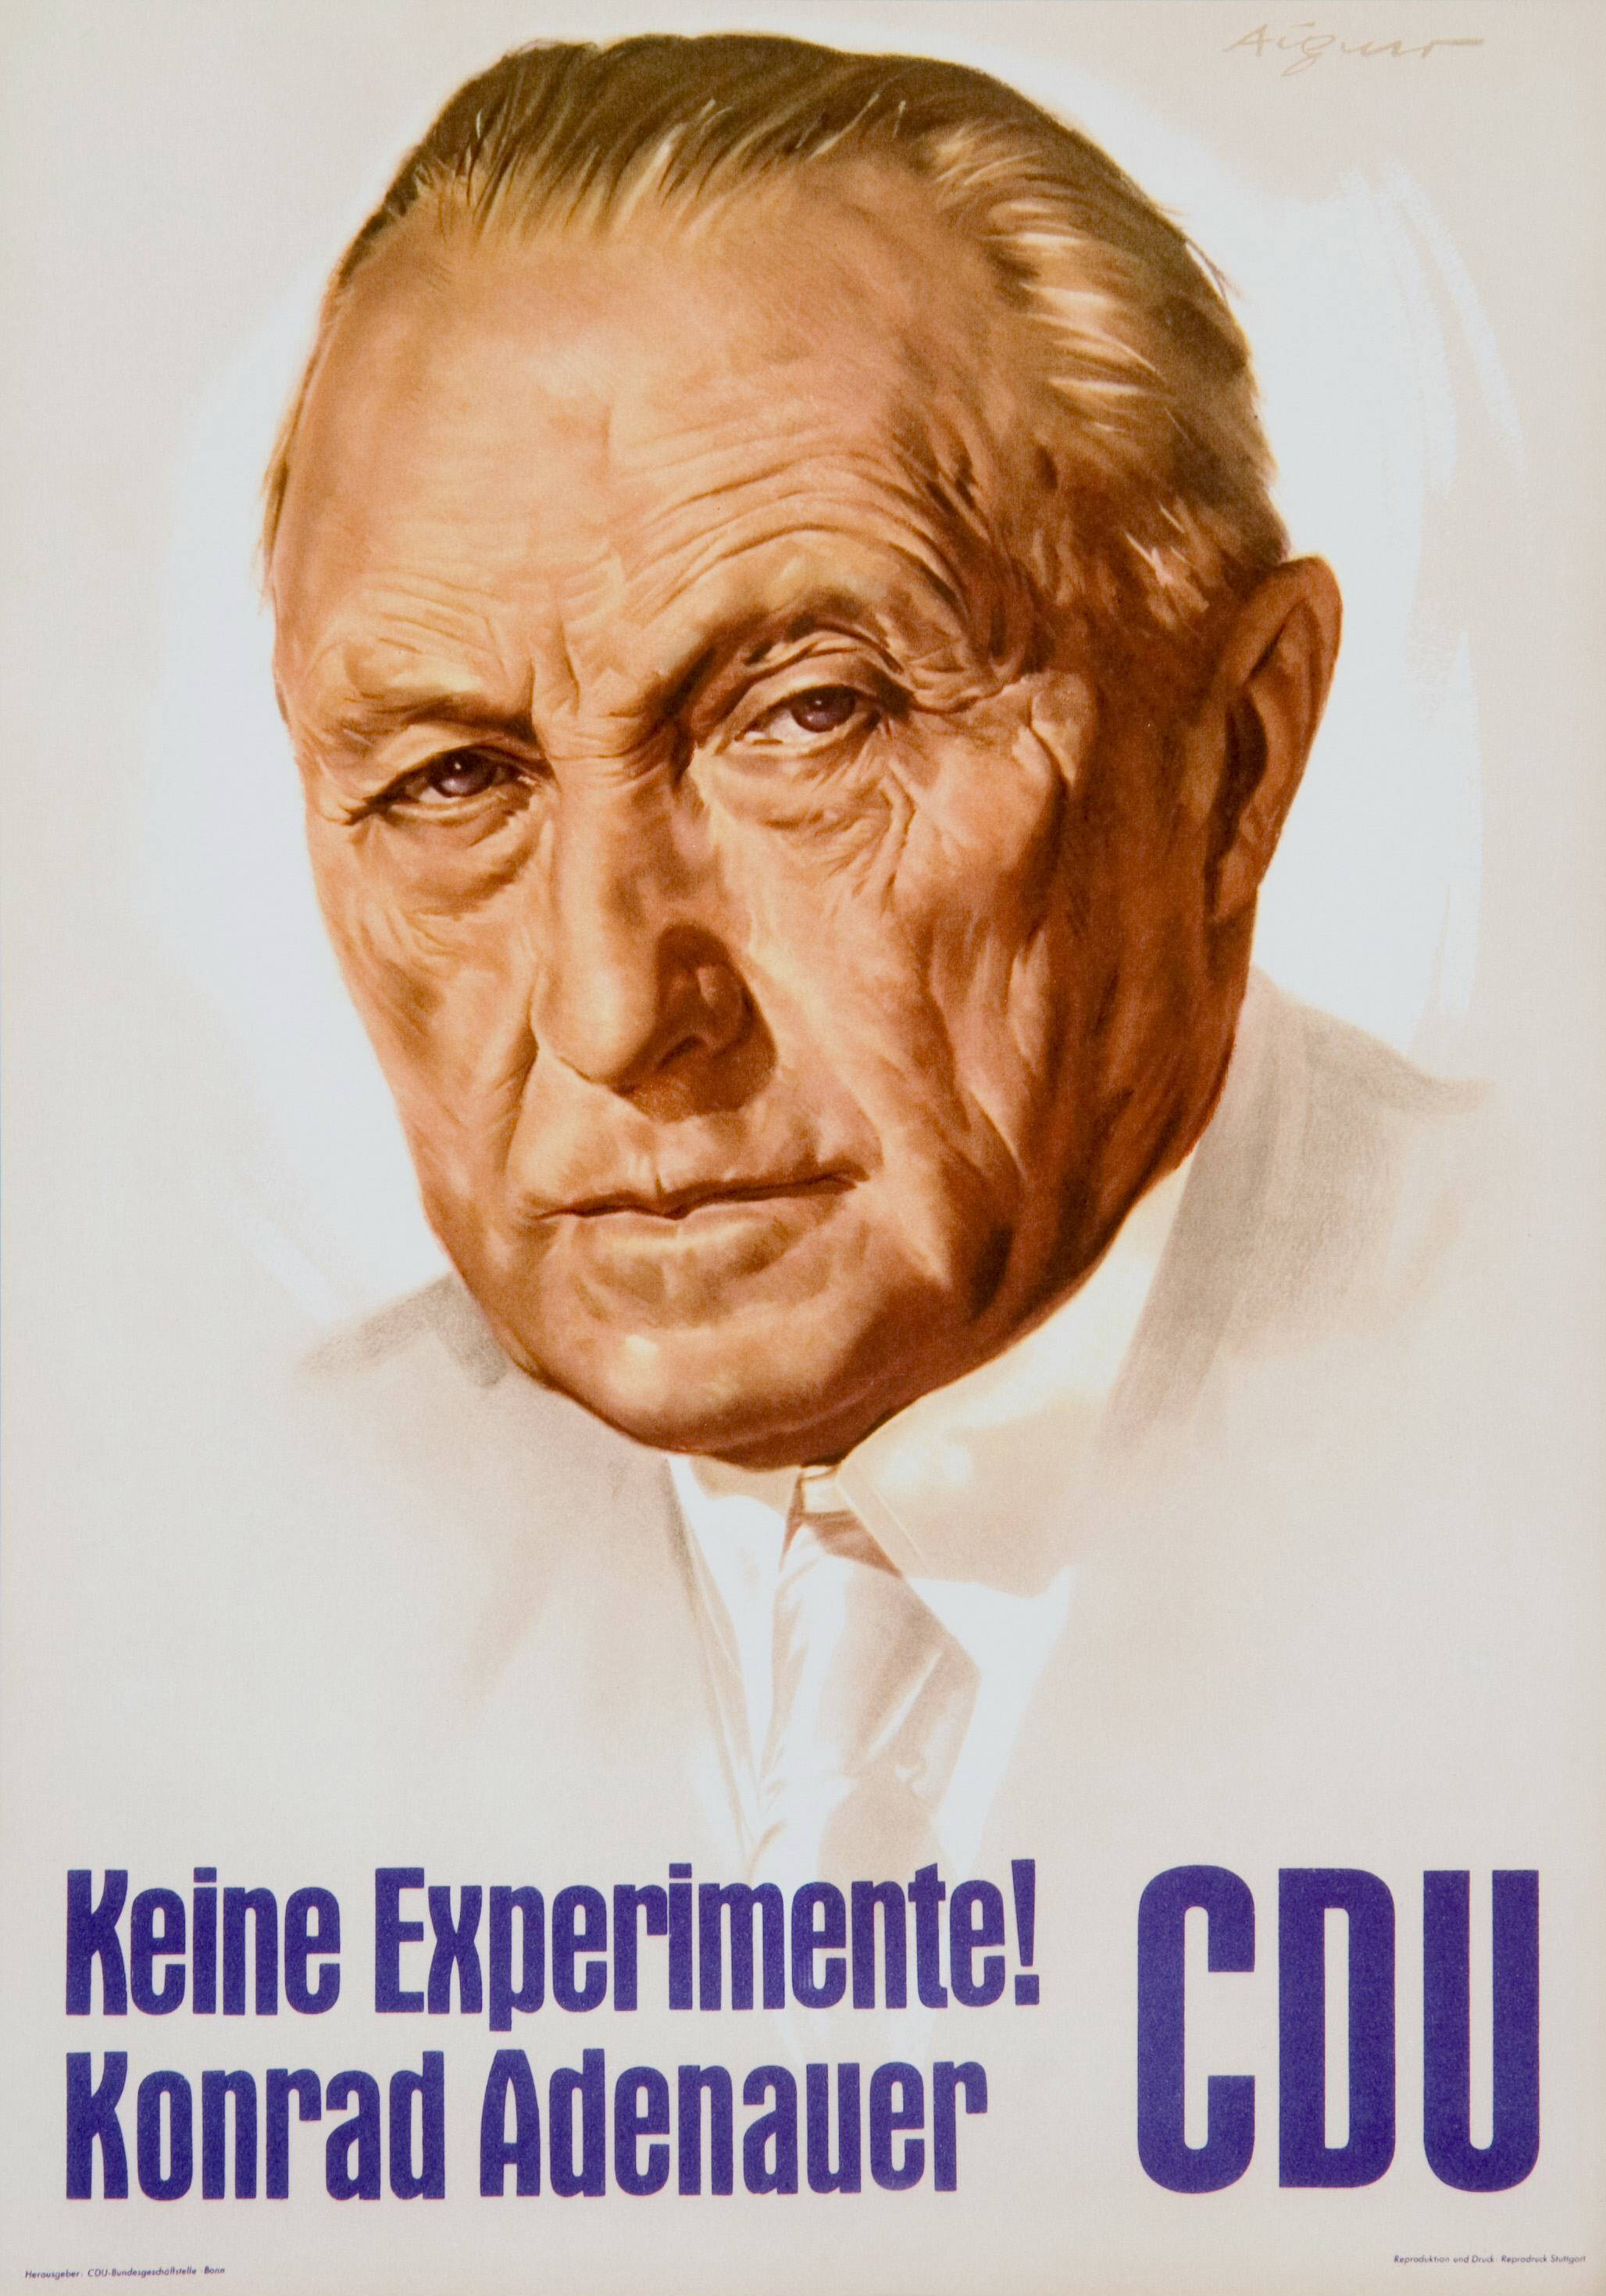 https://upload.wikimedia.org/wikipedia/commons/4/40/CDU_Wahlkampfplakat_-_kaspl019.JPG